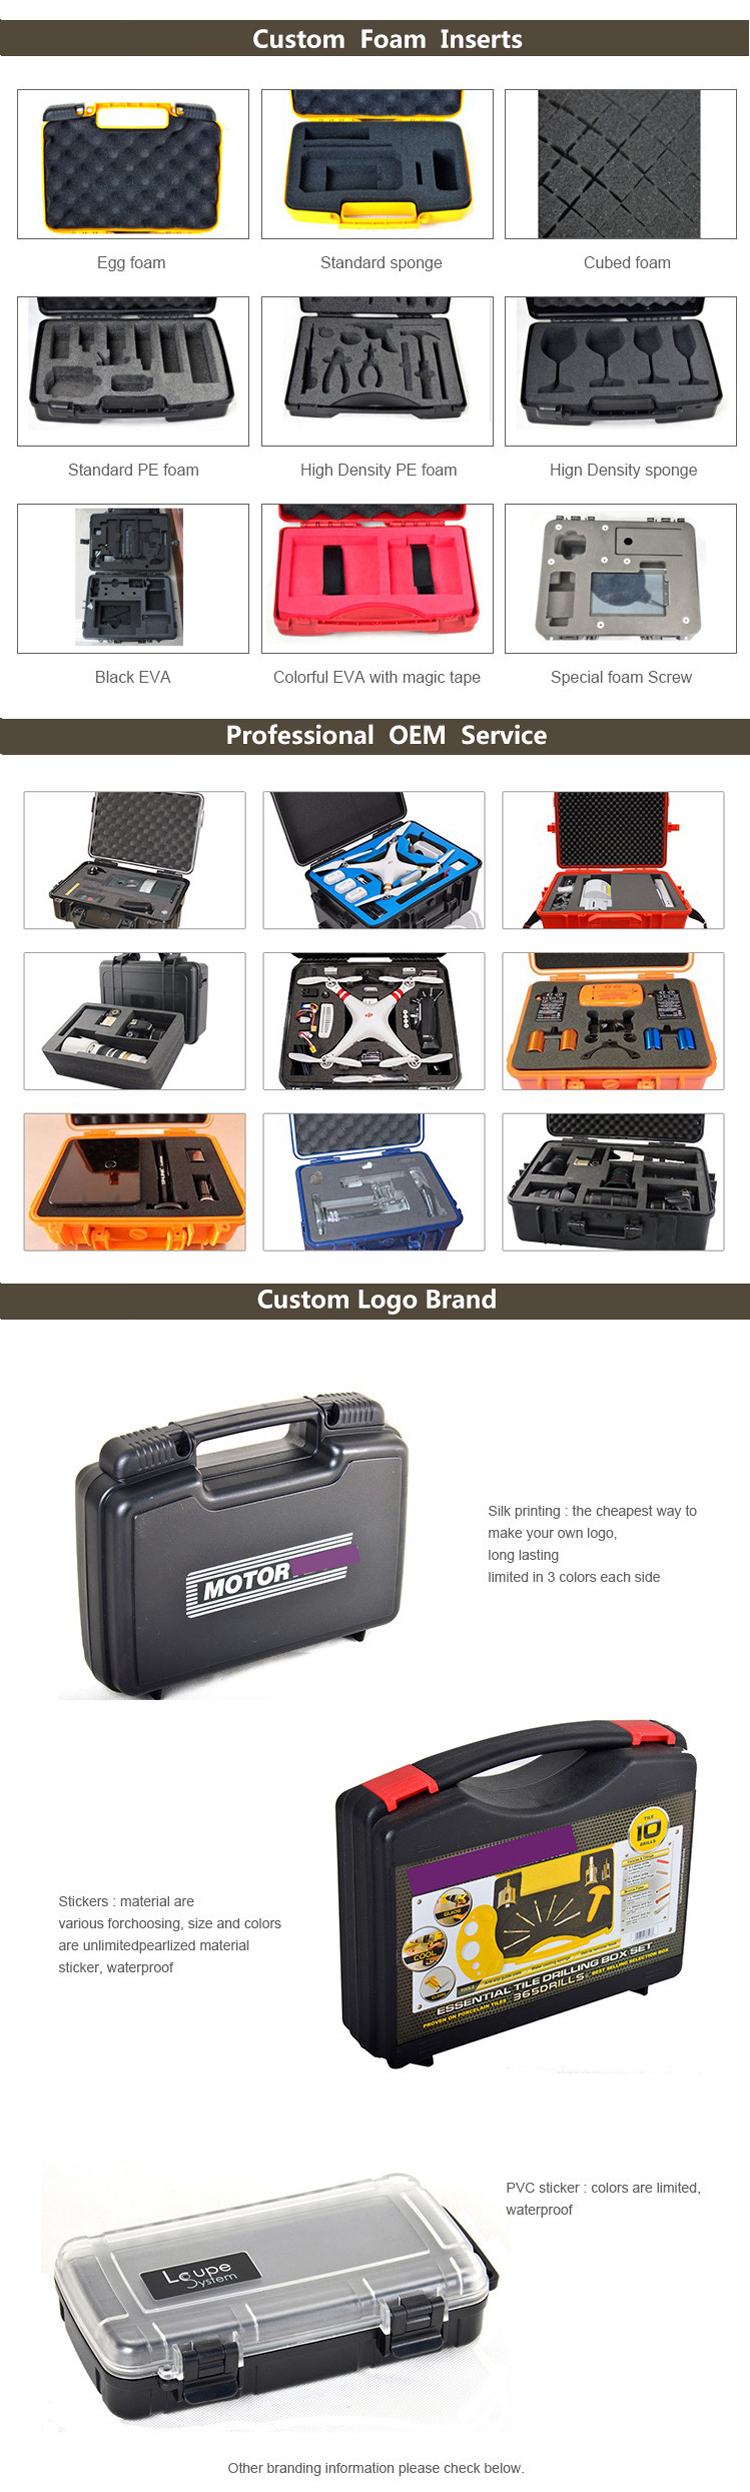 OEM factory waterproof shockproof resistant rugged tool case with foam insert